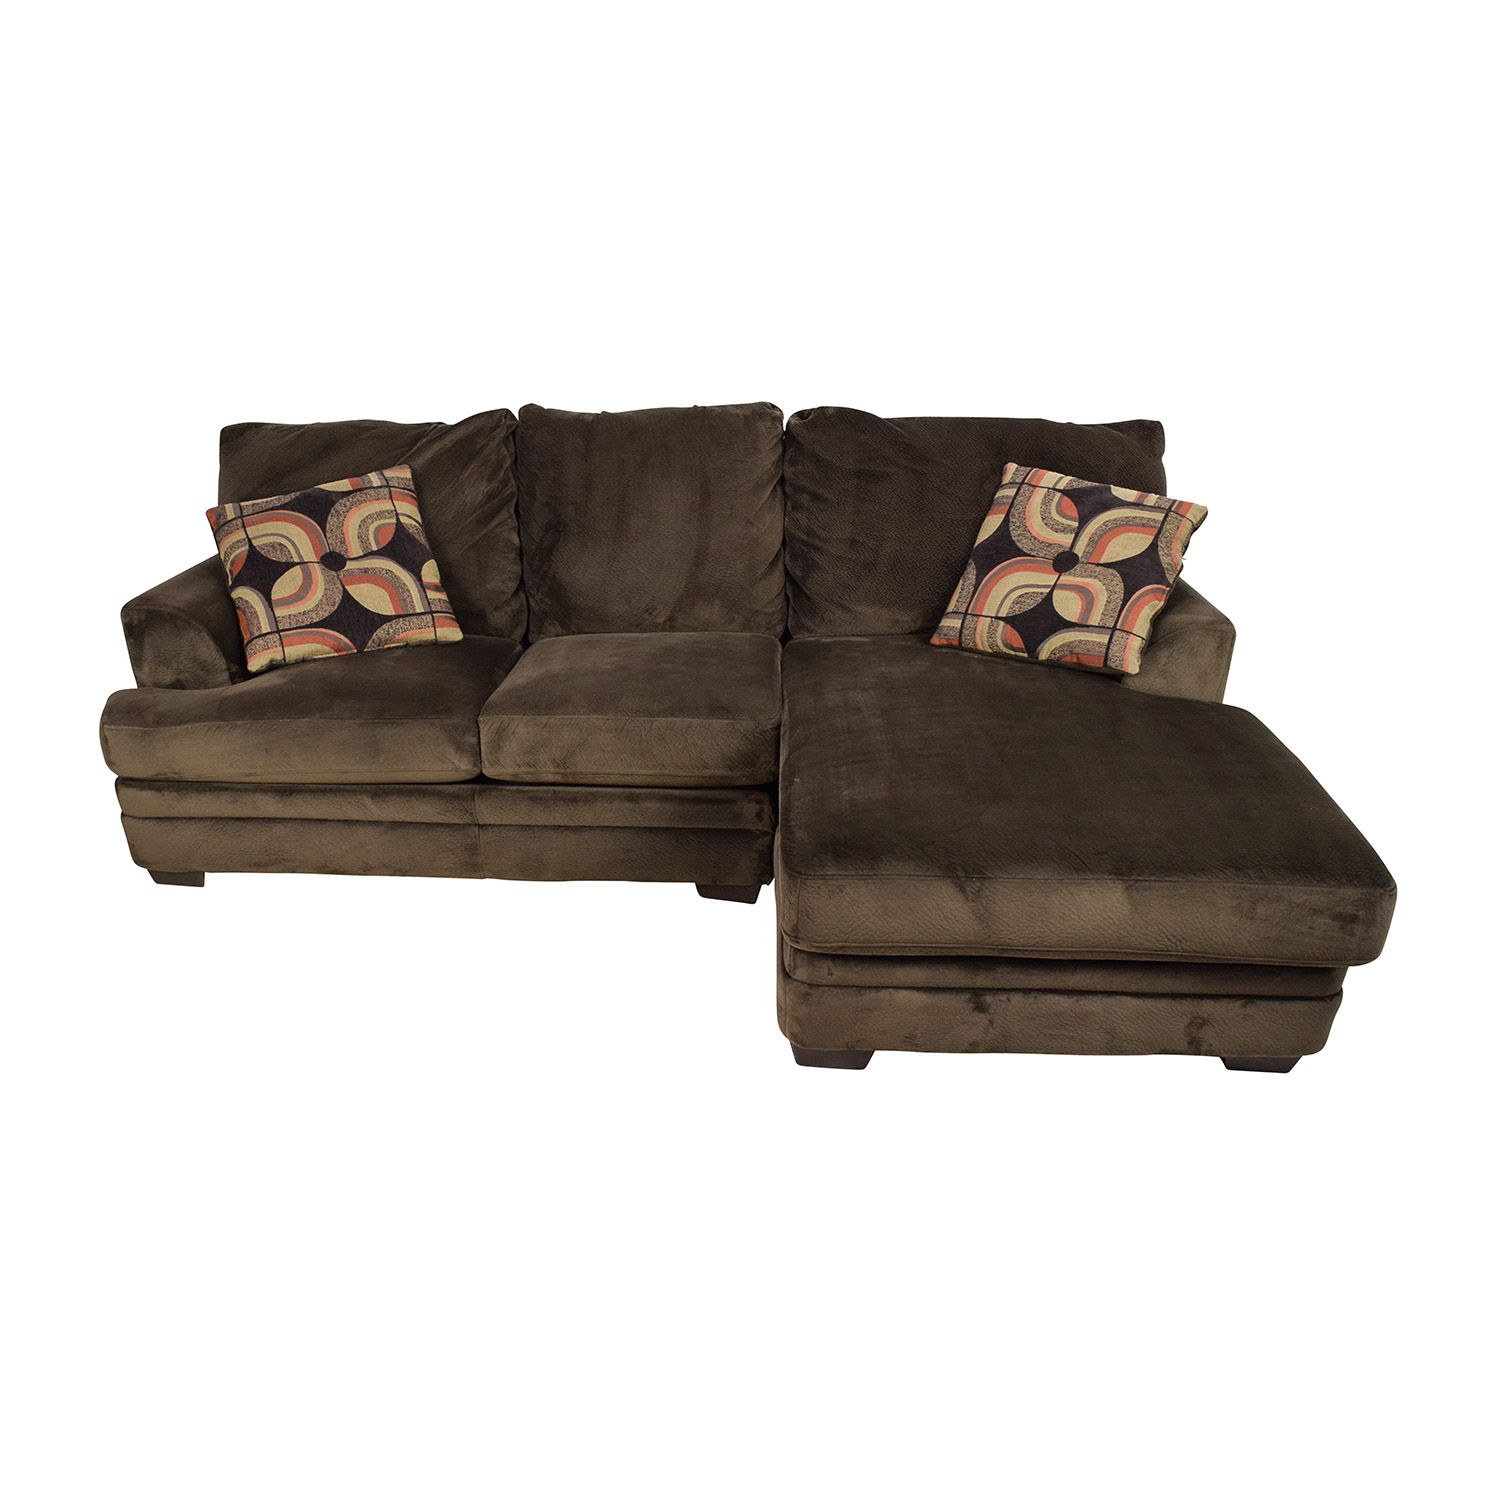 buy Bobs Furniture Charisma Sectional Sofa Bobs Furniture Sofas